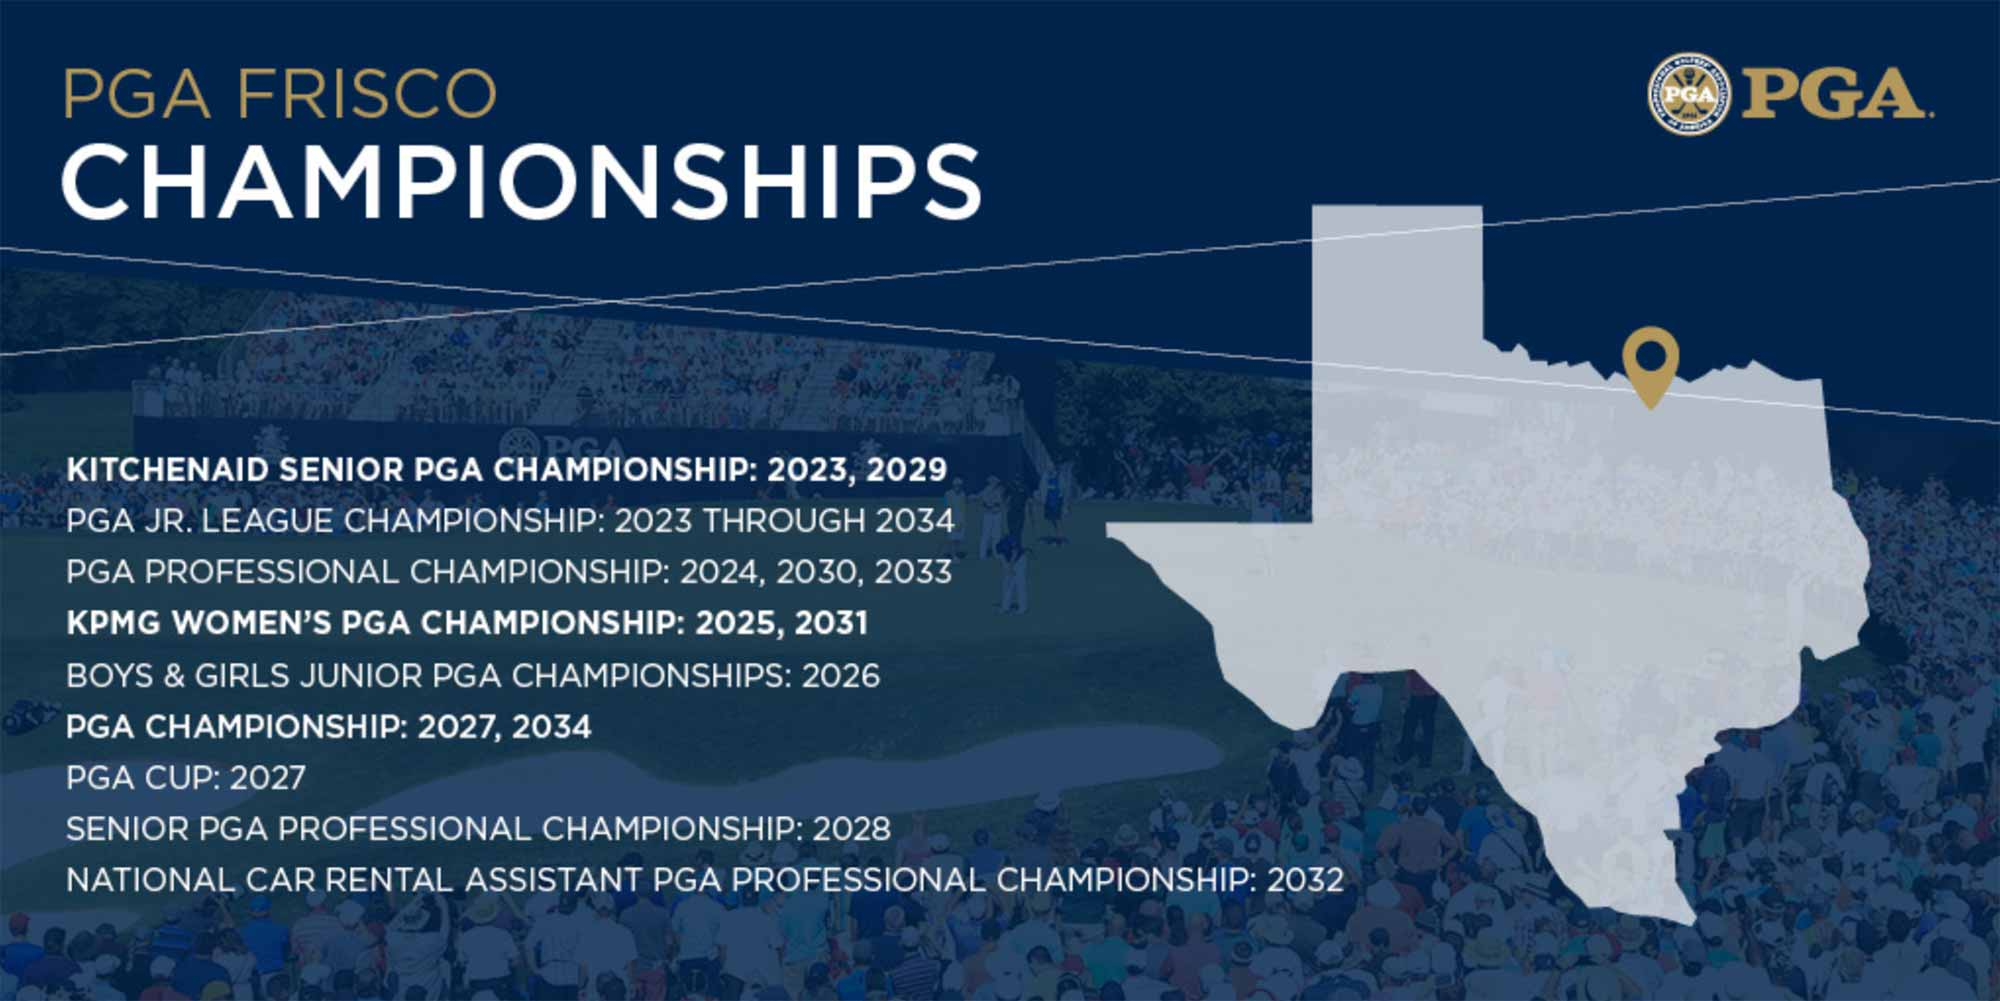 Texas to host 2027 and 2034 US PGA Championships